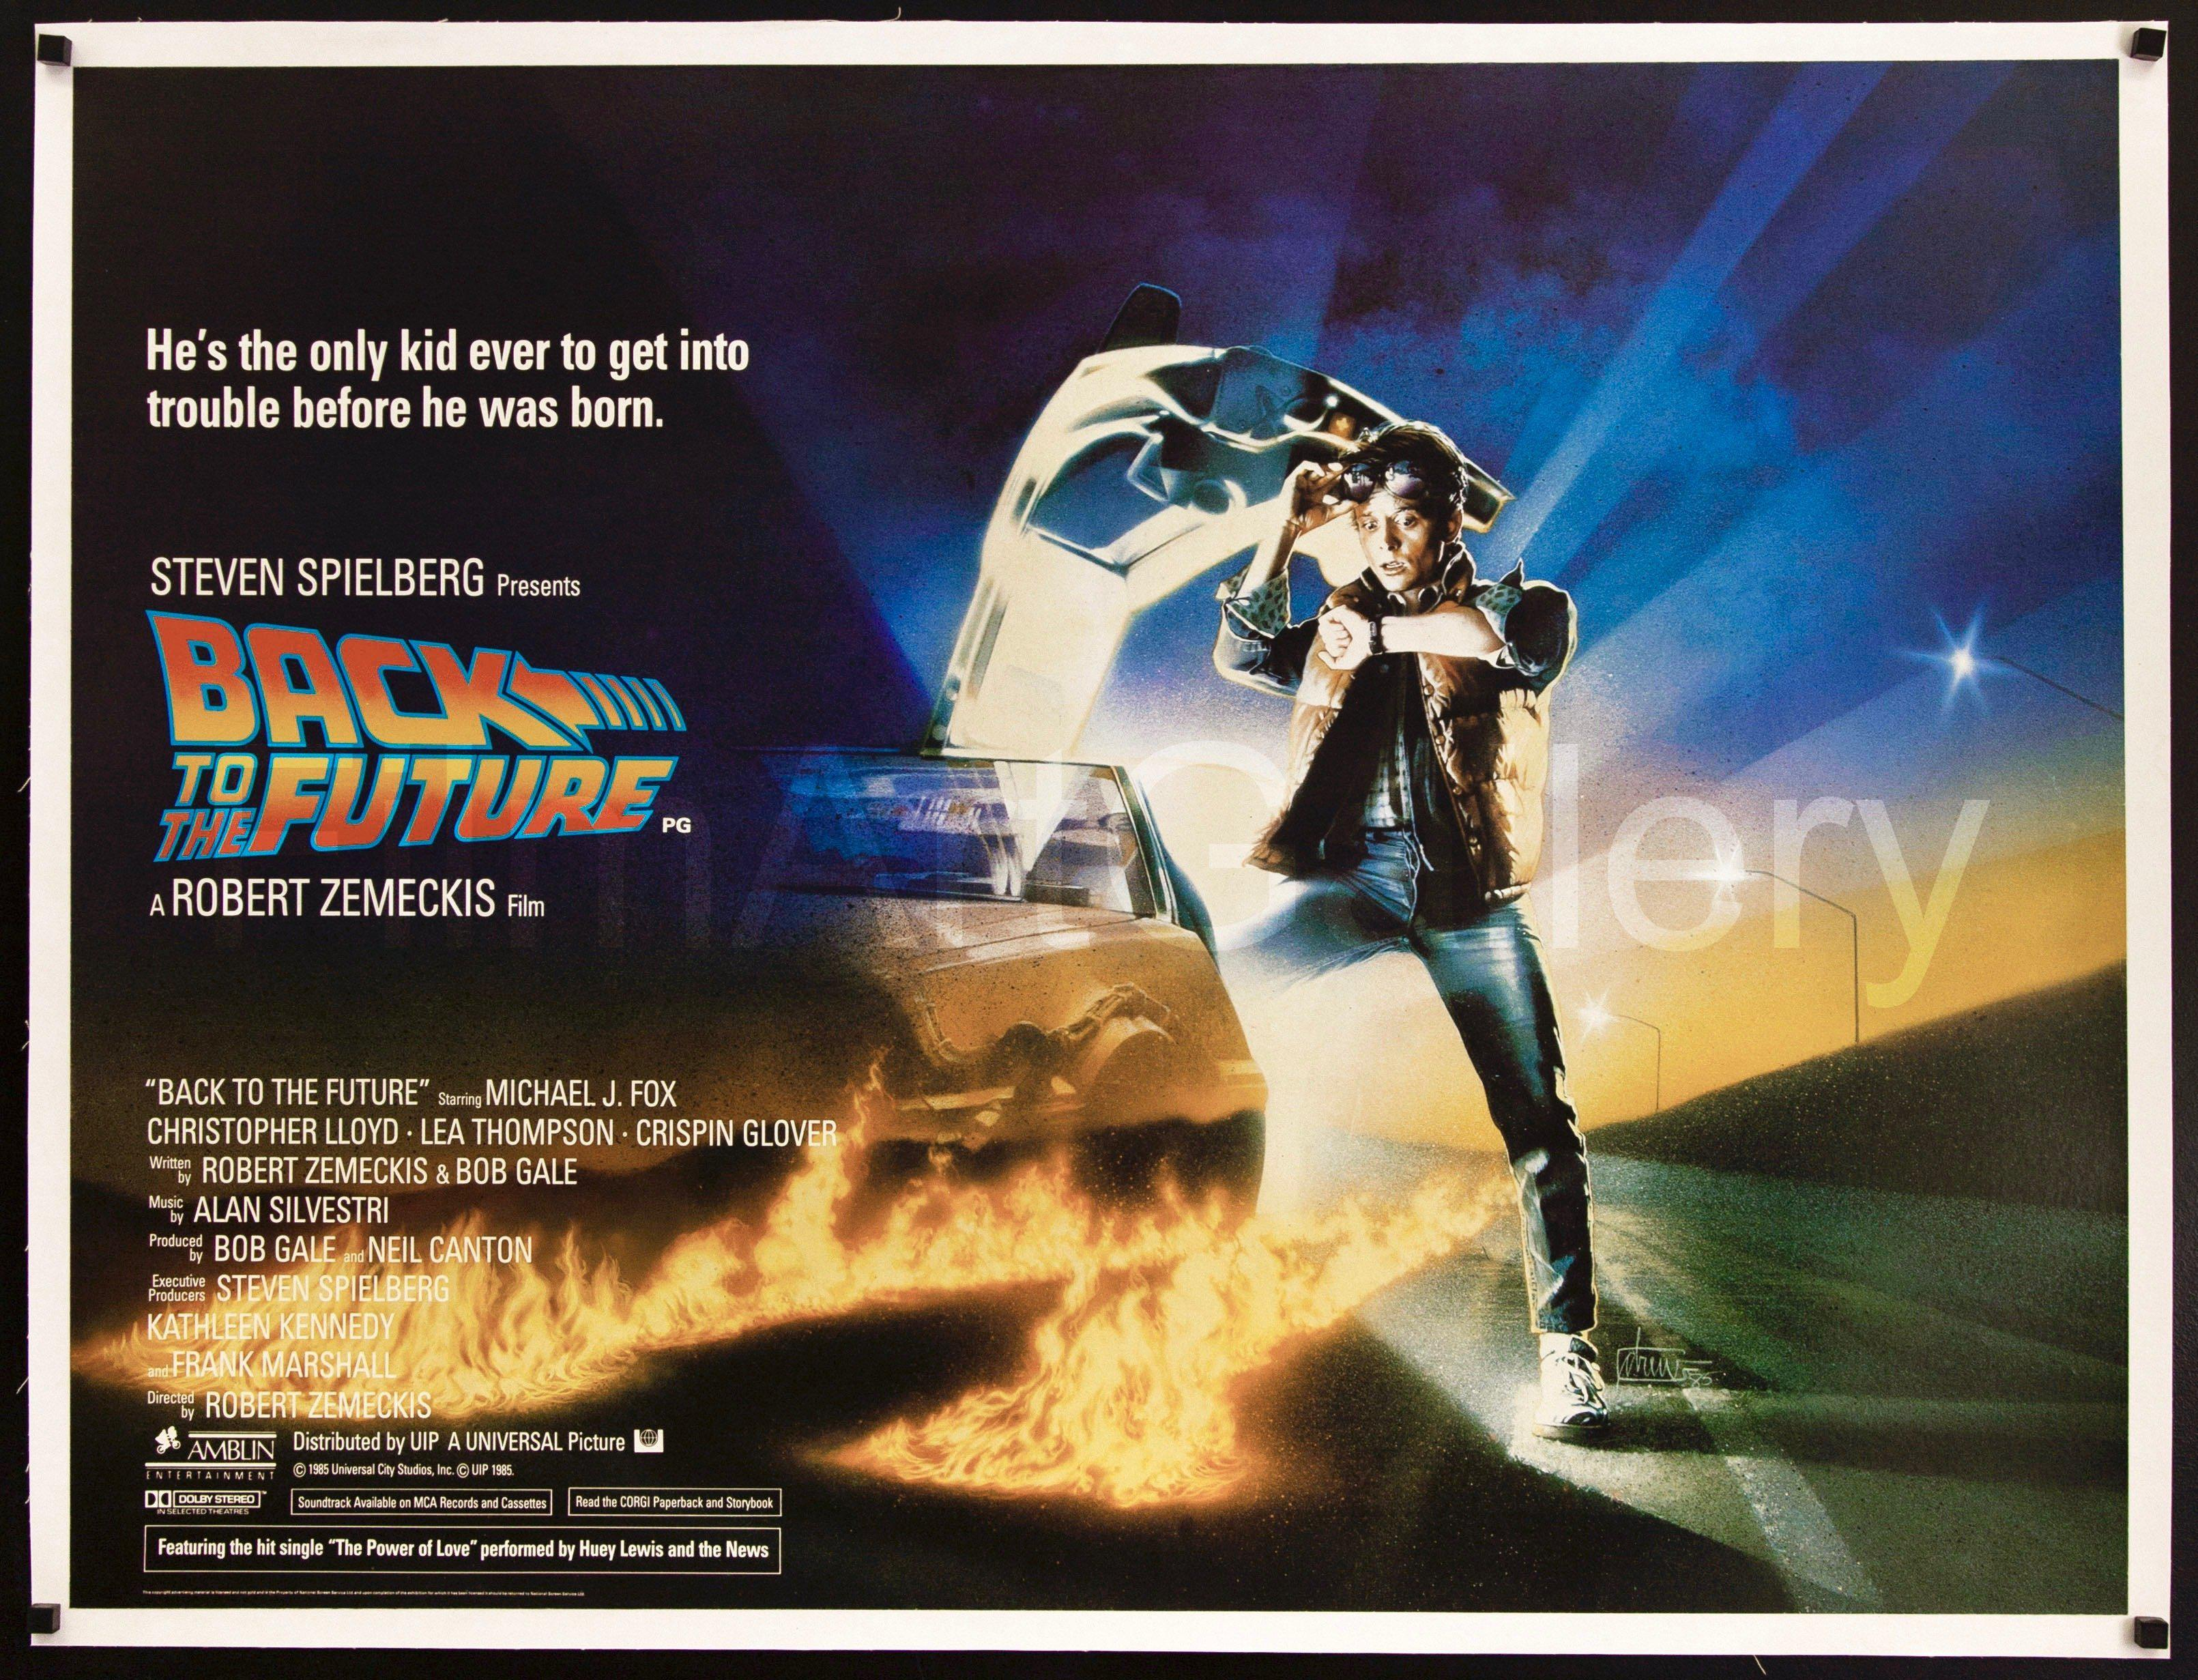 Poster Poster Back to the future back to the Future Movie Steven Spielberg